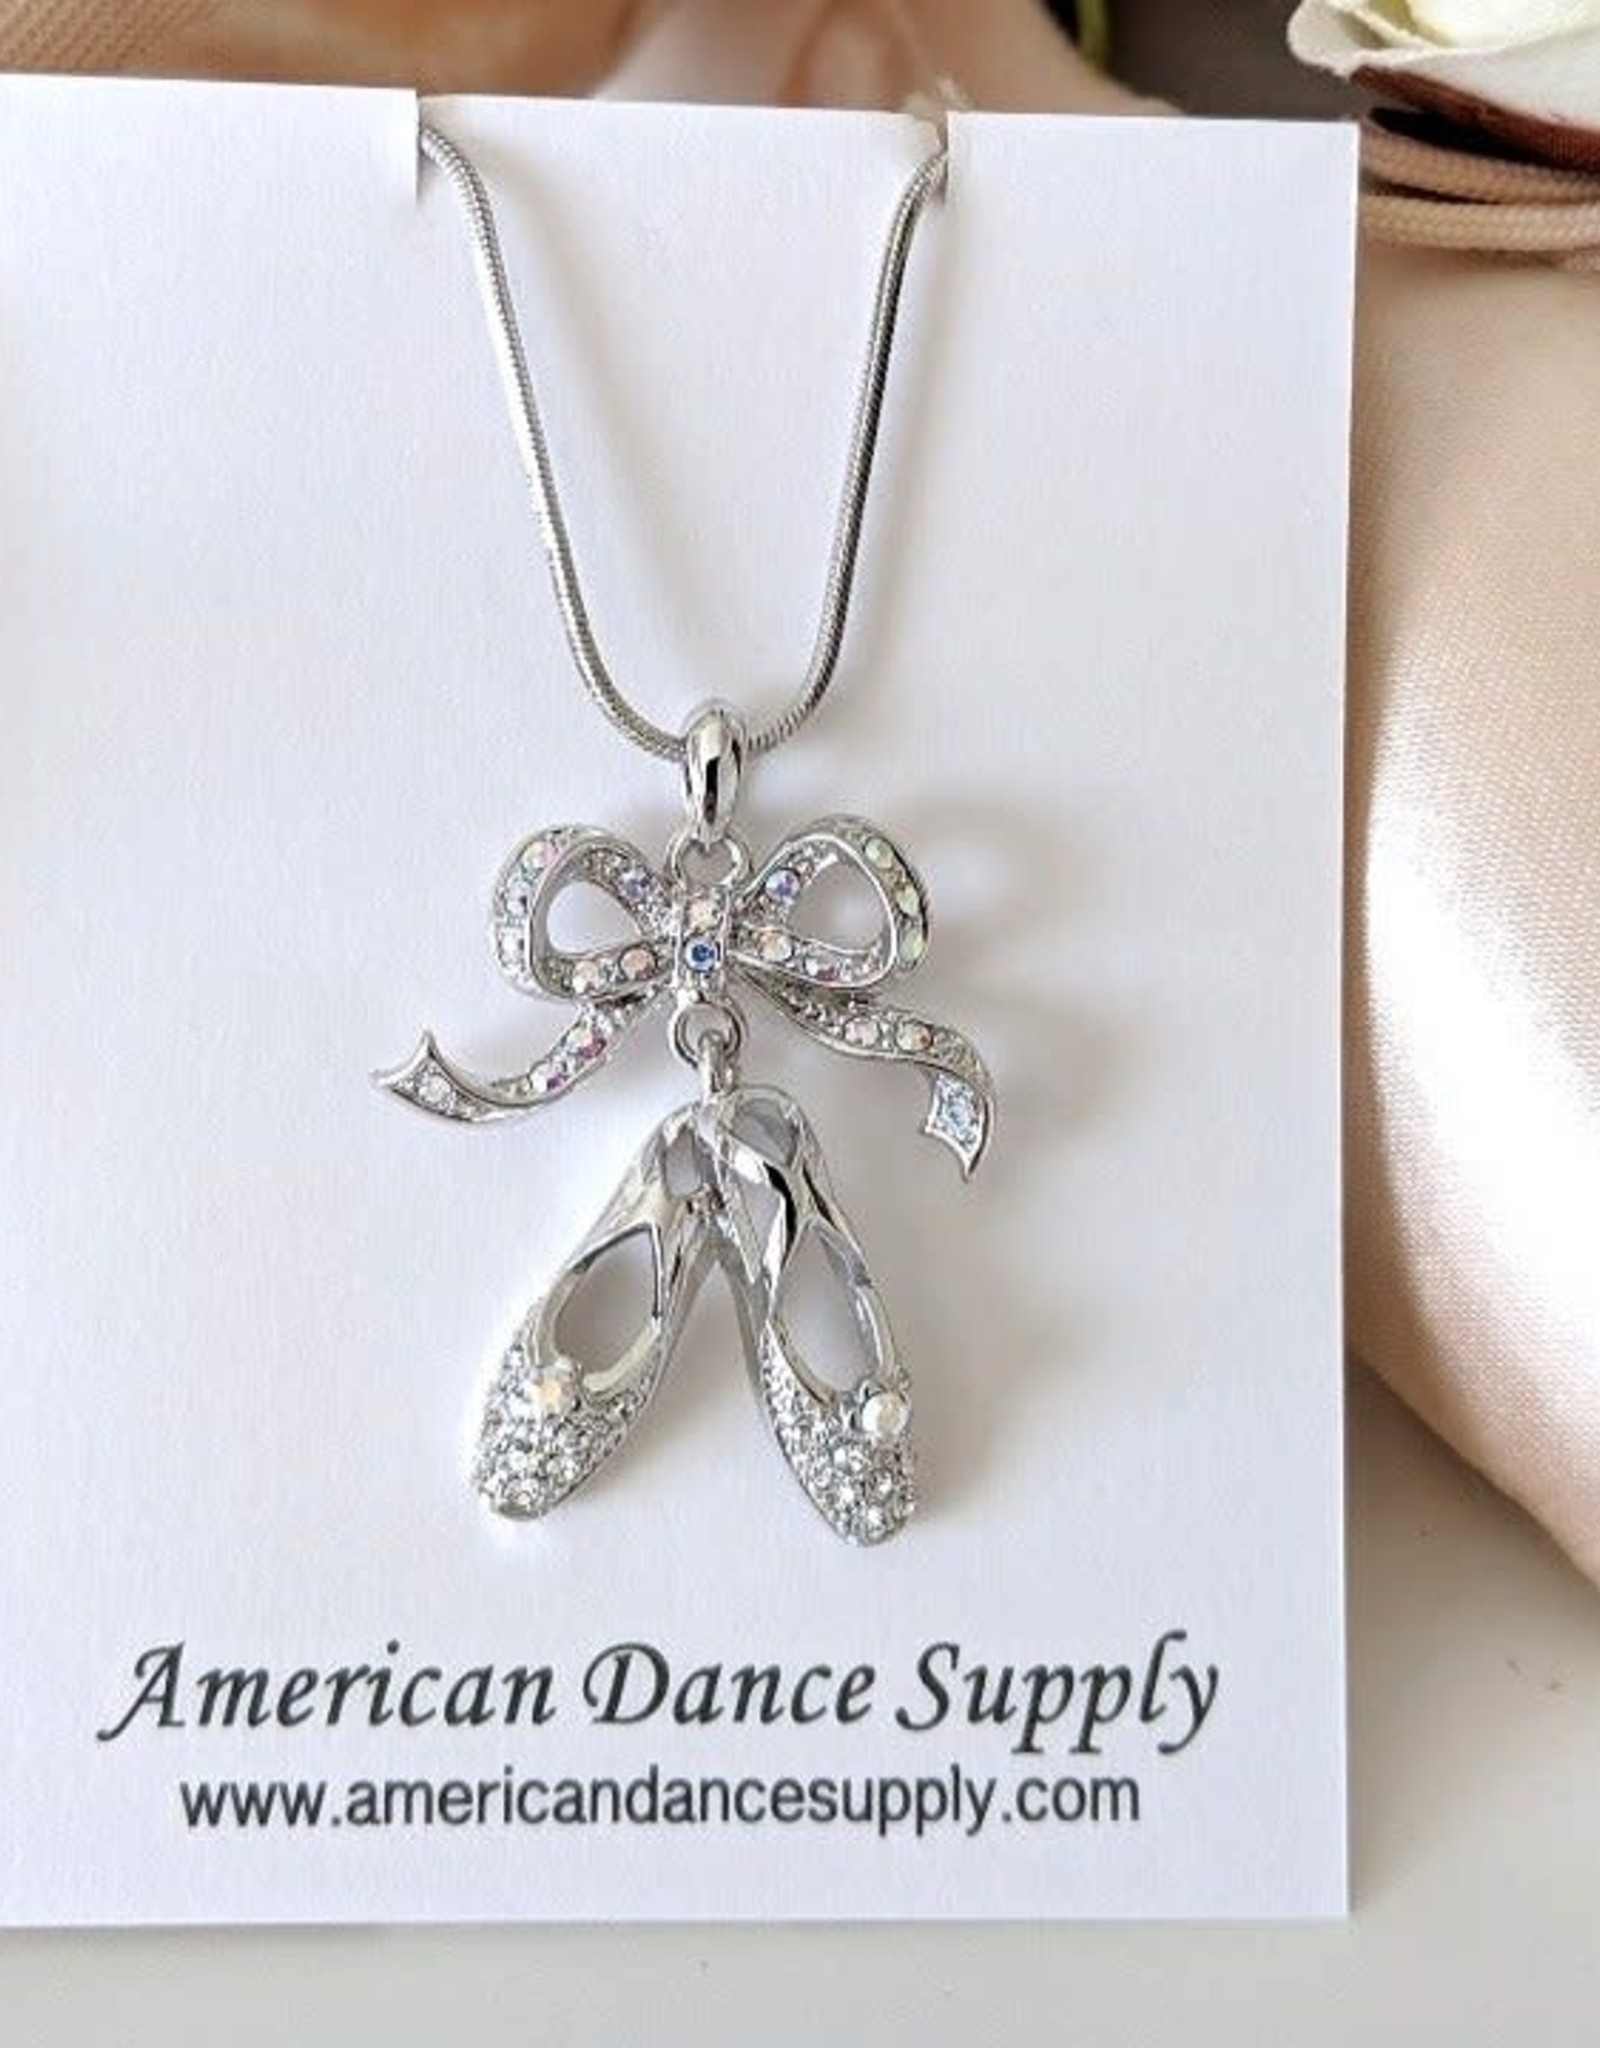 American Dance Supply COLLIER 2 CHAUSSONS